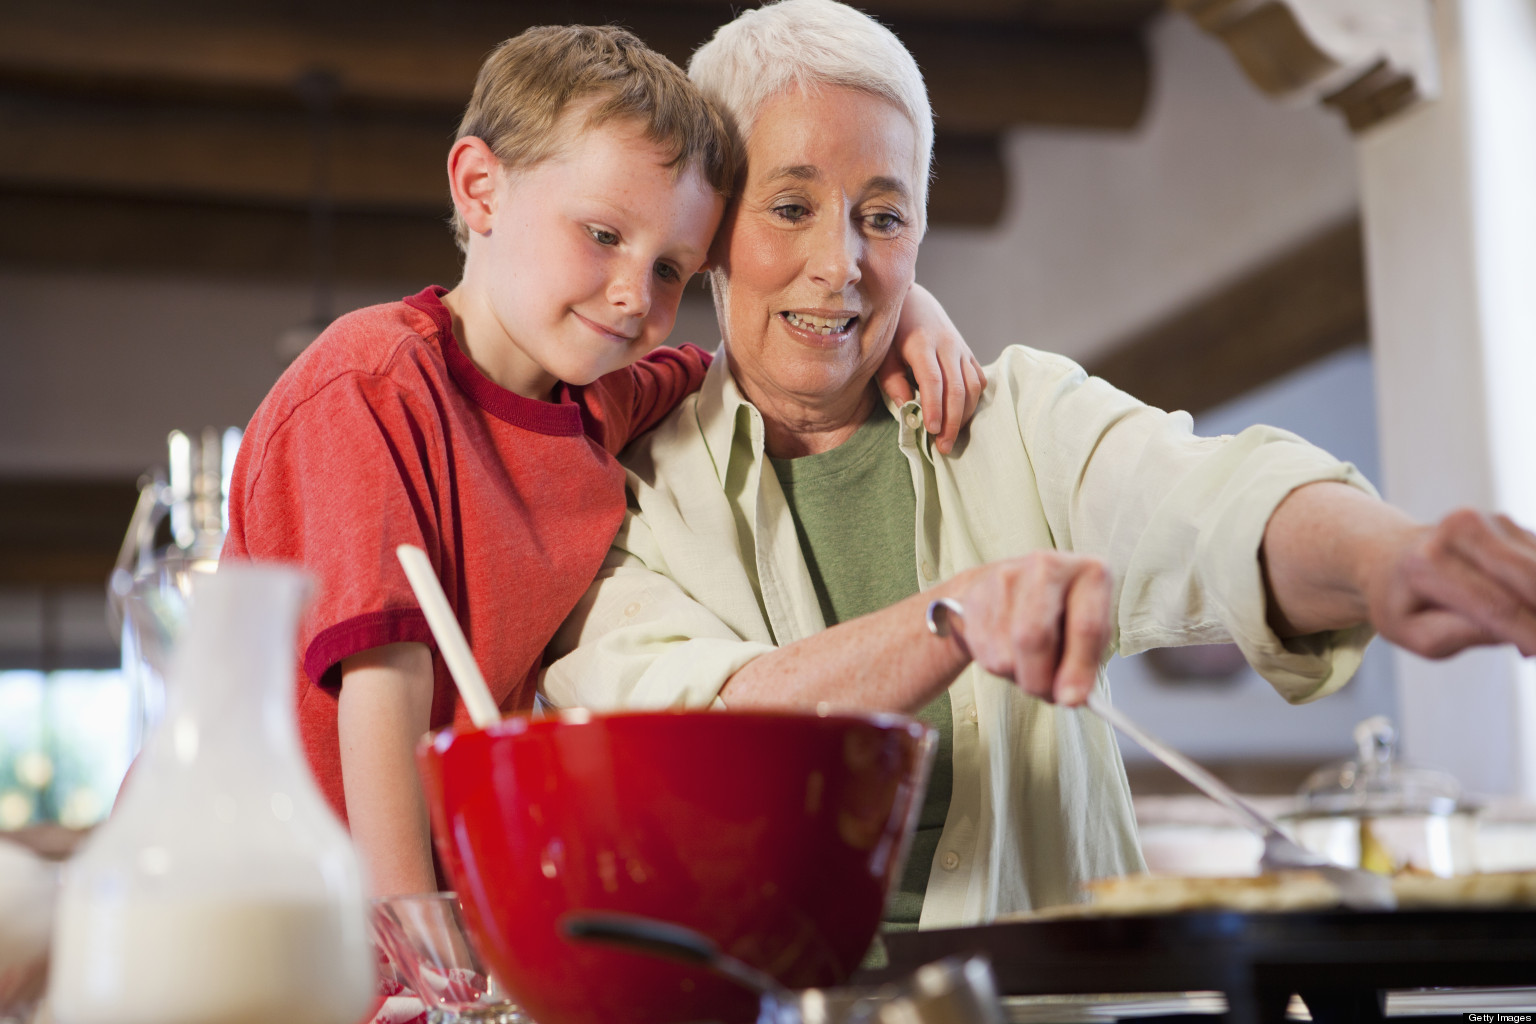 grandparents raising grandchildren Grandparents are an important resource for both parents and children.